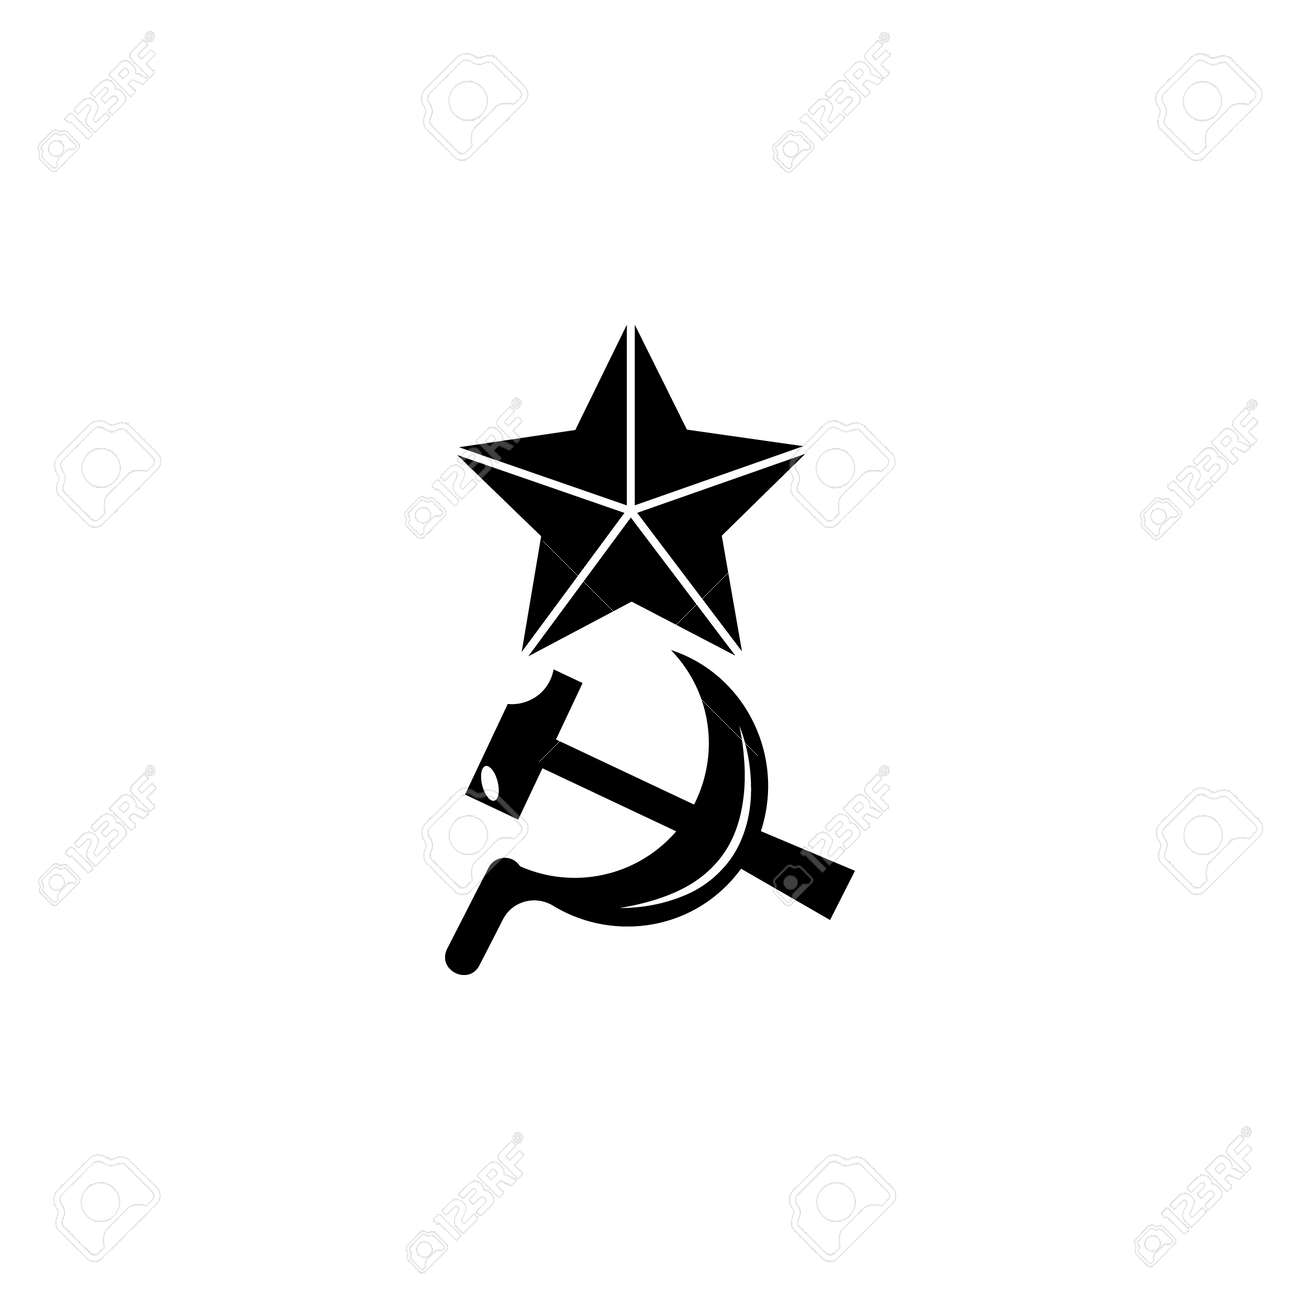 Sickle Hammer And Star Icon Element Of Communism Illustration